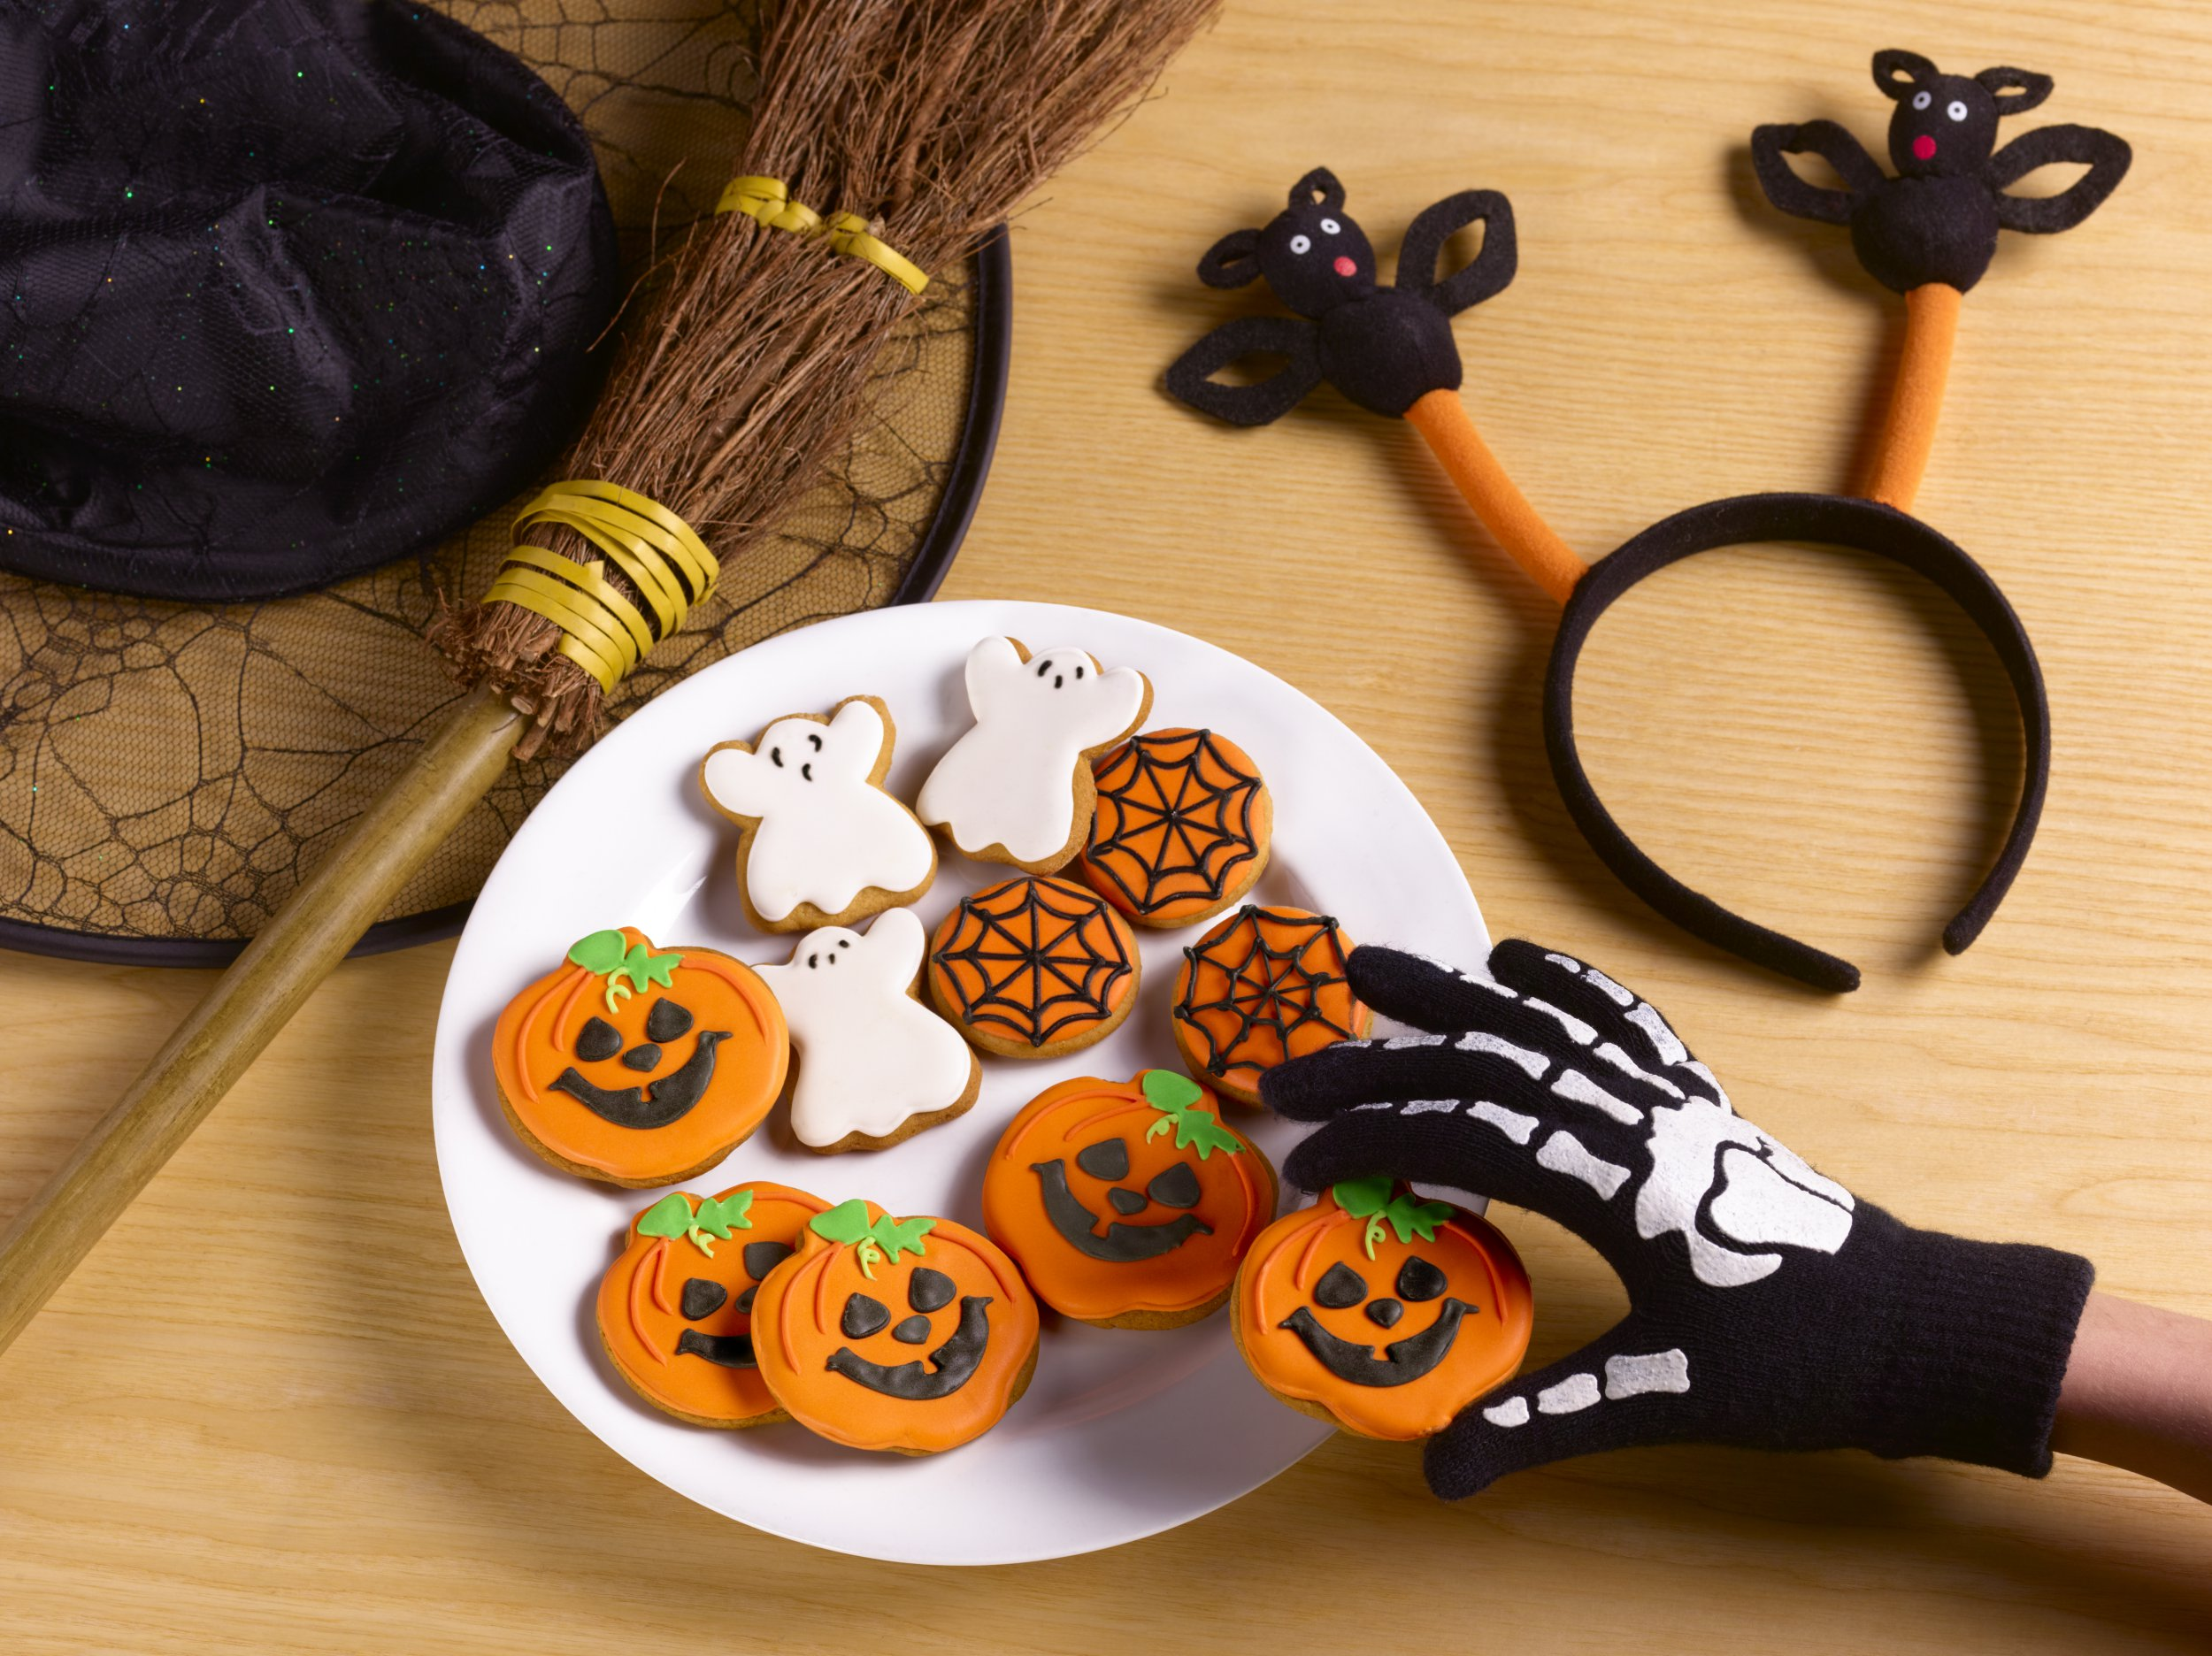 13 creepy recipes to break out this Halloween